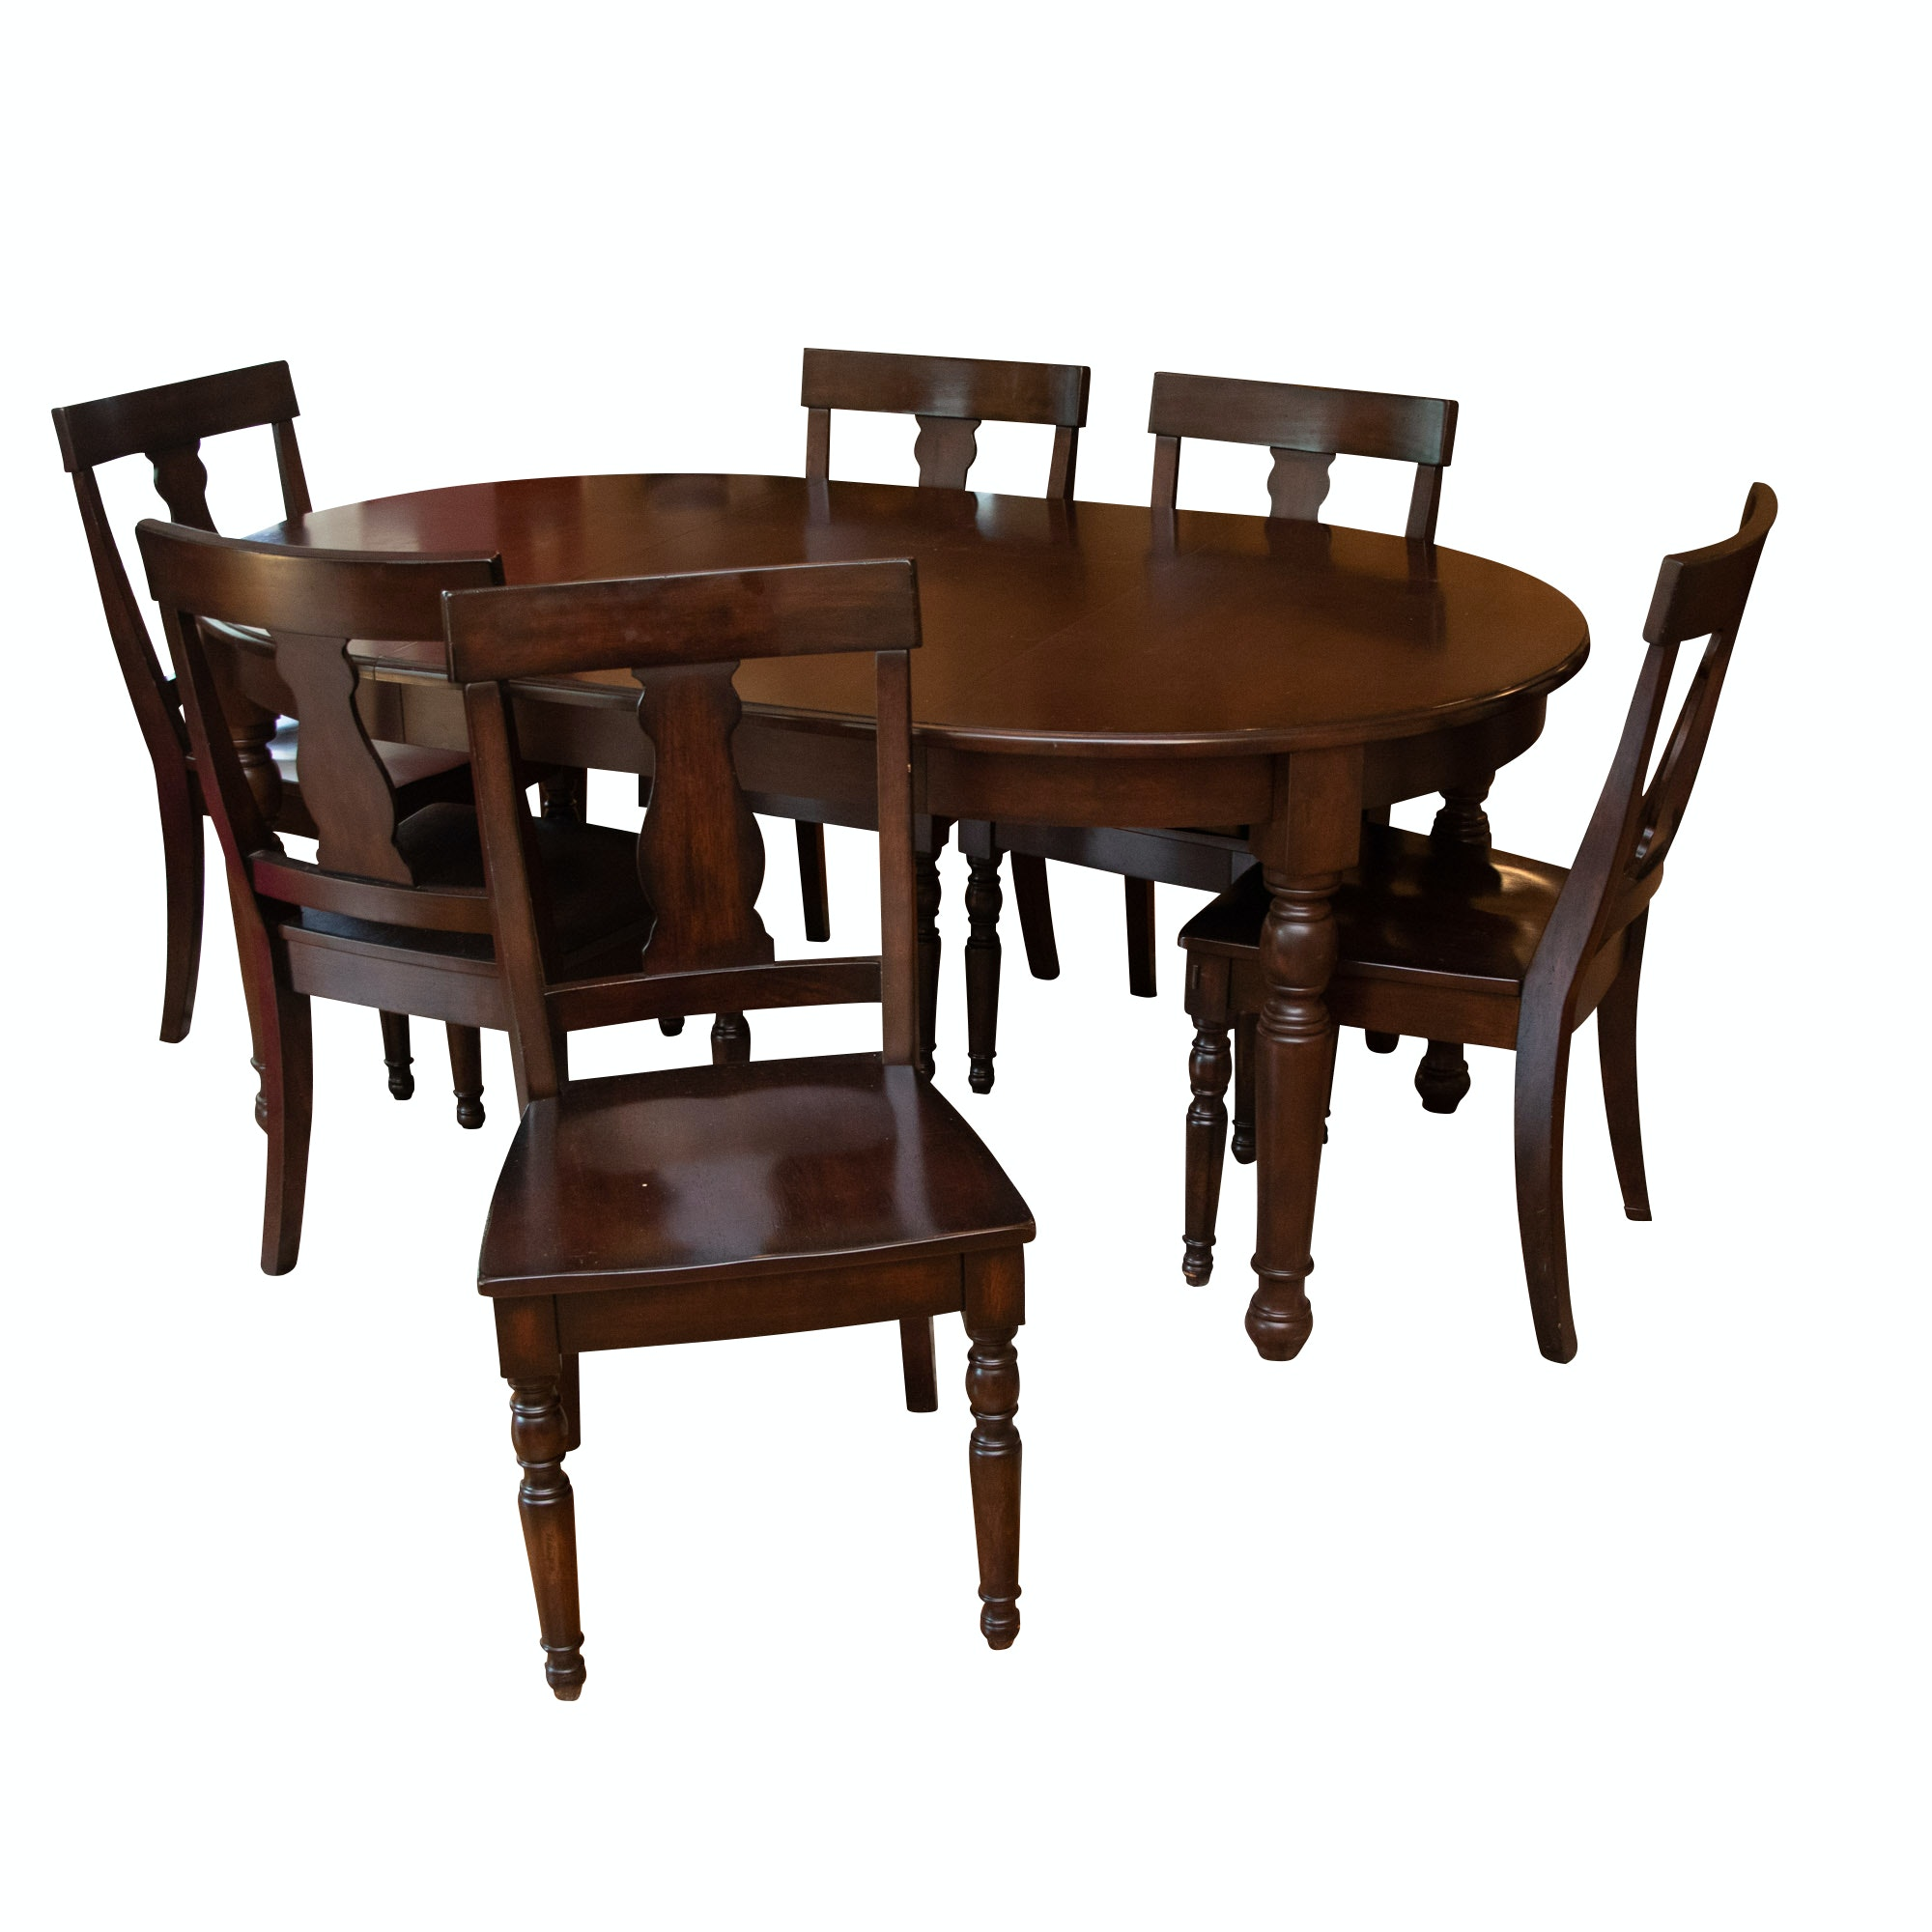 Pottery Barn Dining Table and Chairs